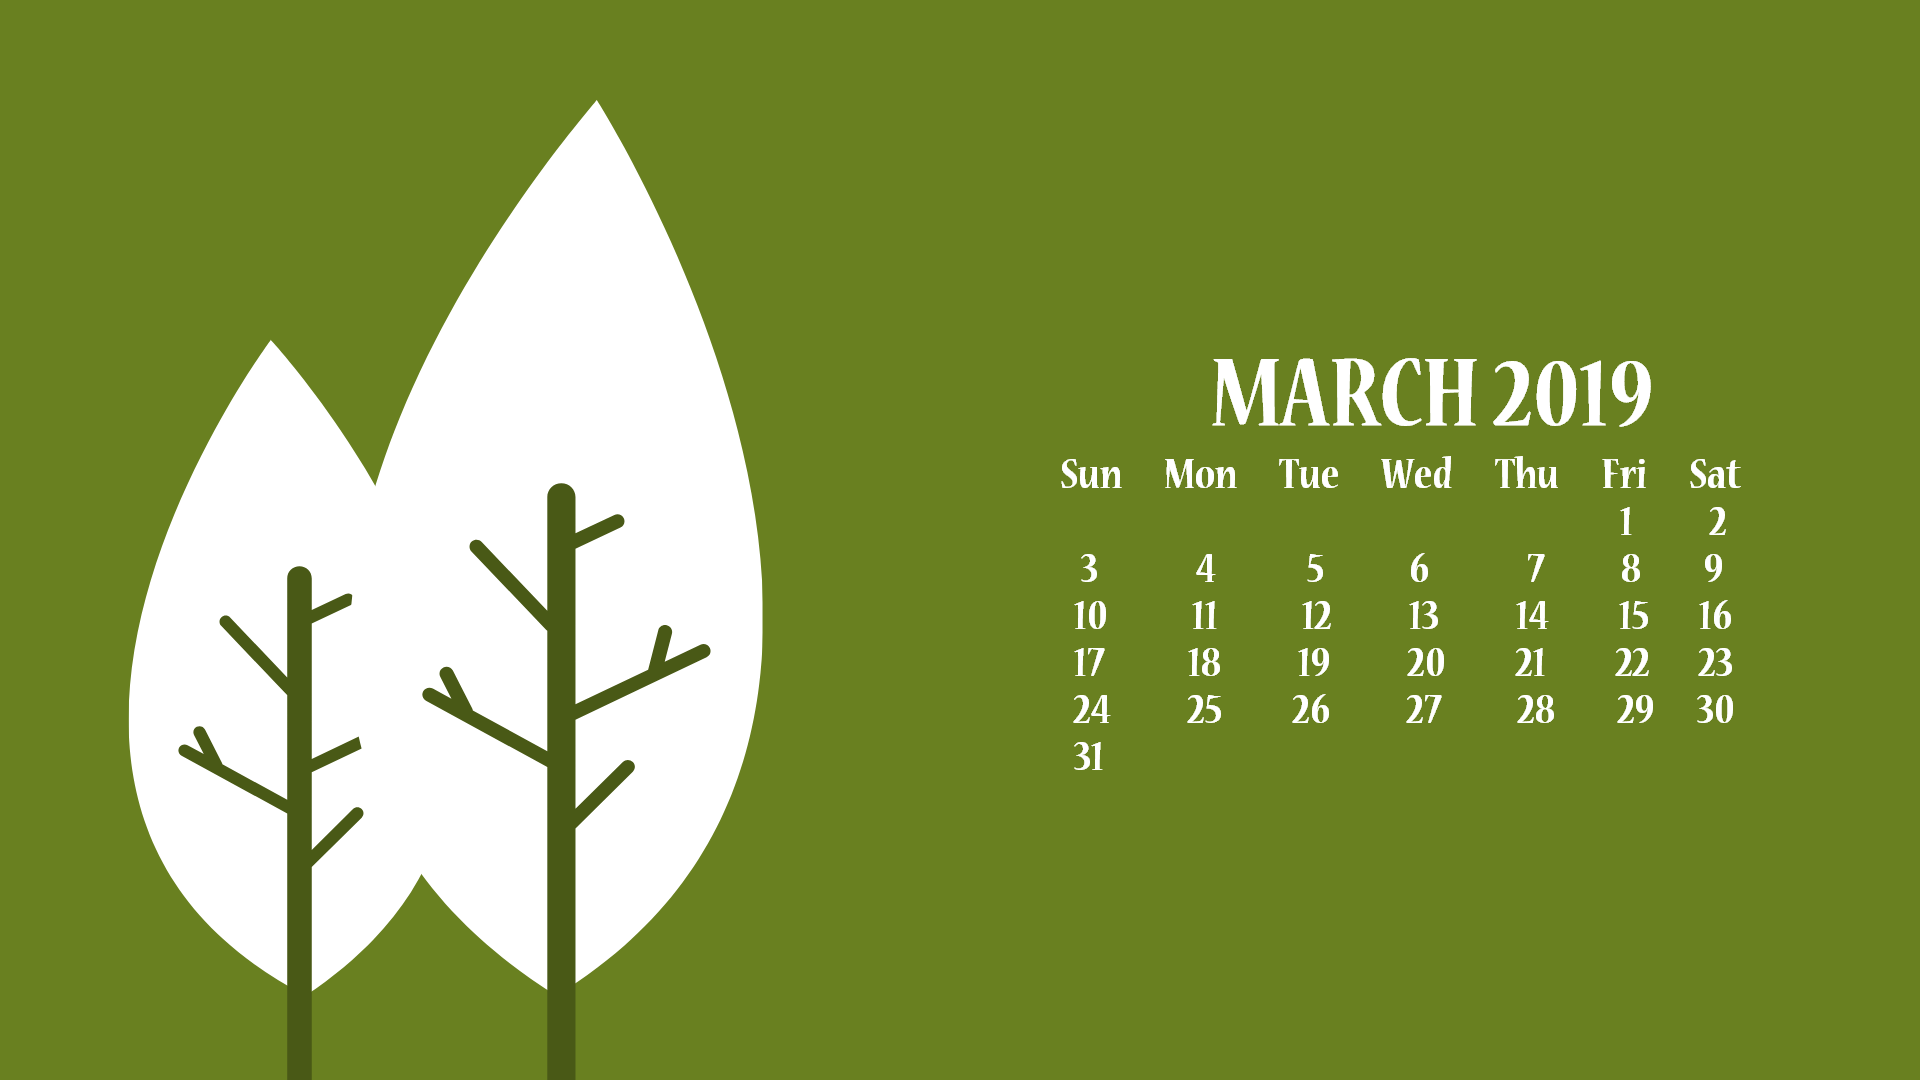 March 2019 Desktop Wallpaper With Calendar Calendar Wallpaper Desktop Calendar Desktop Wallpaper